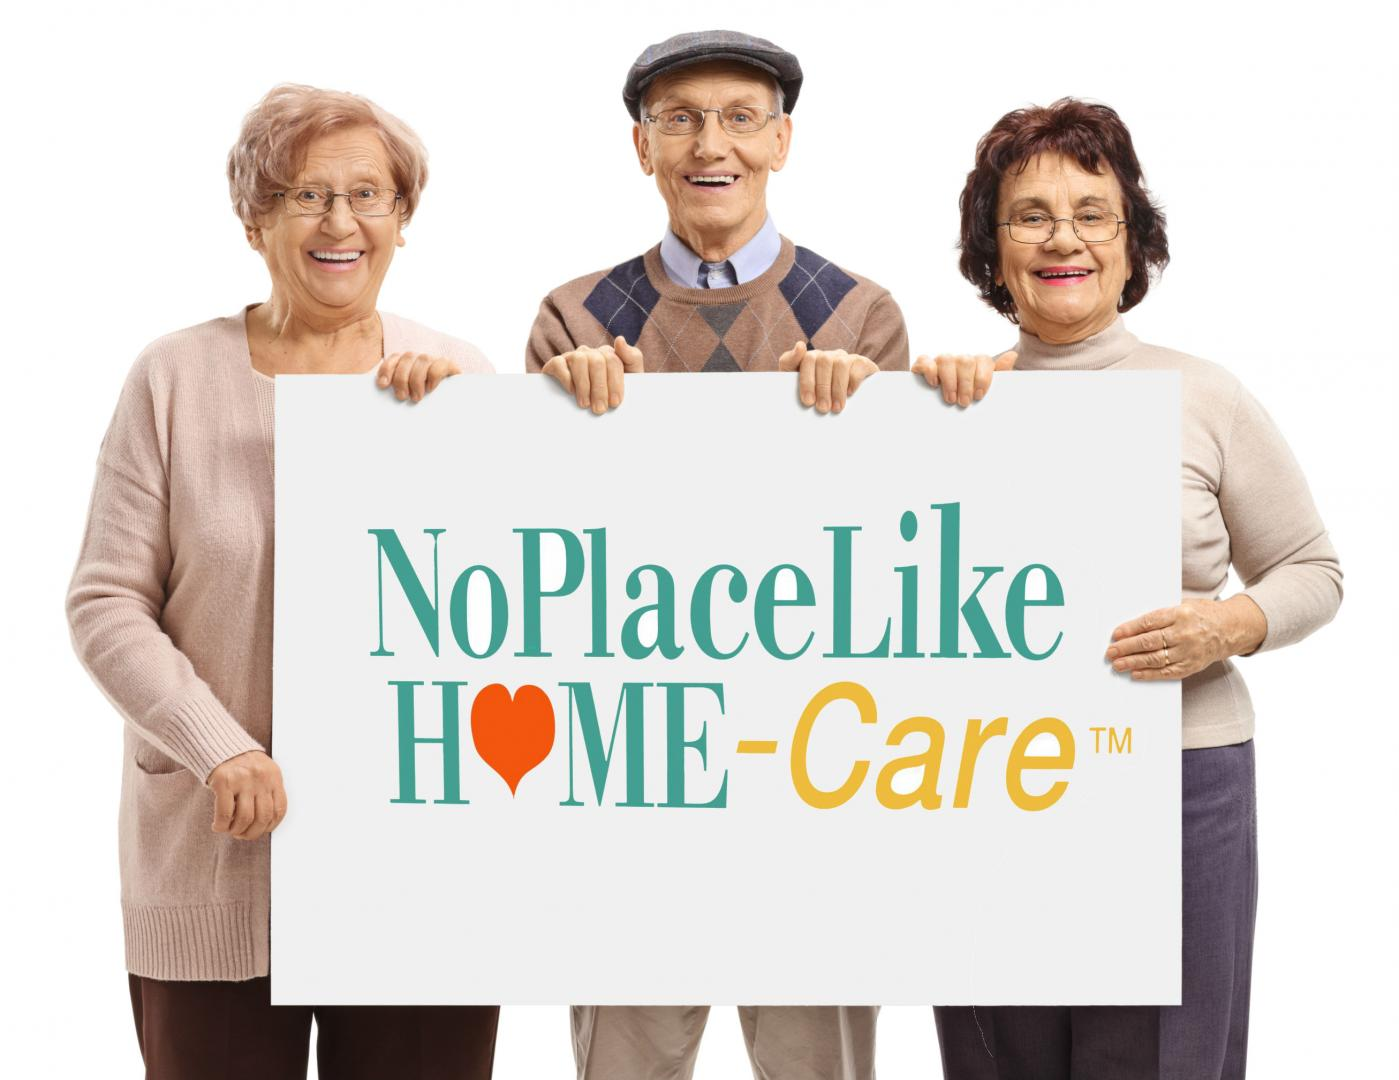 no place like home care sign held up by clients